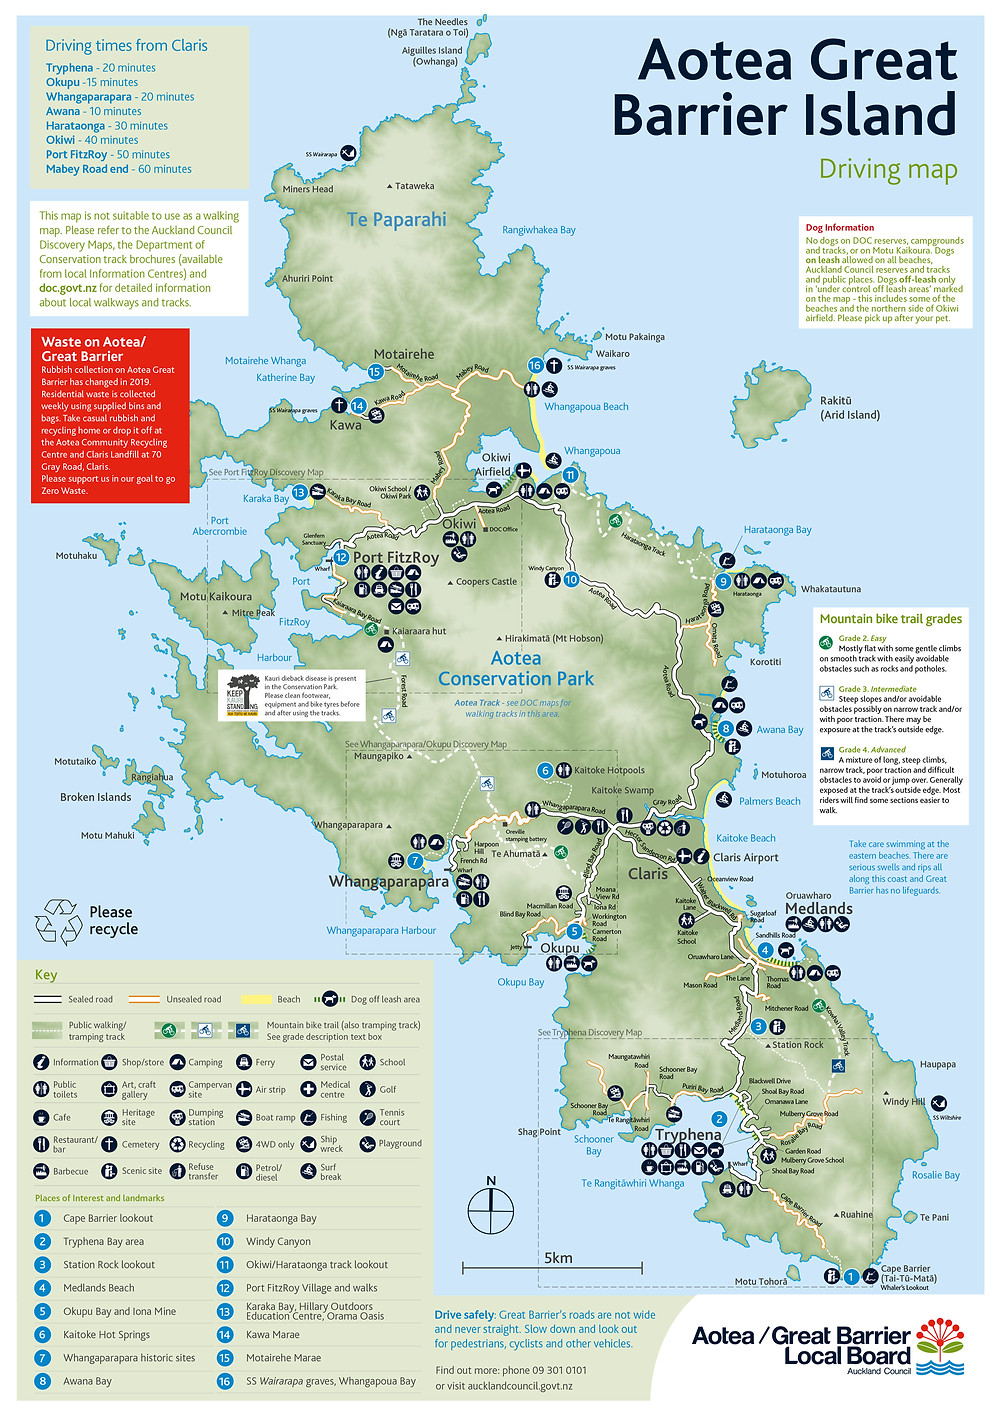 A coloured driving map of Aotea/Great Barrier Island